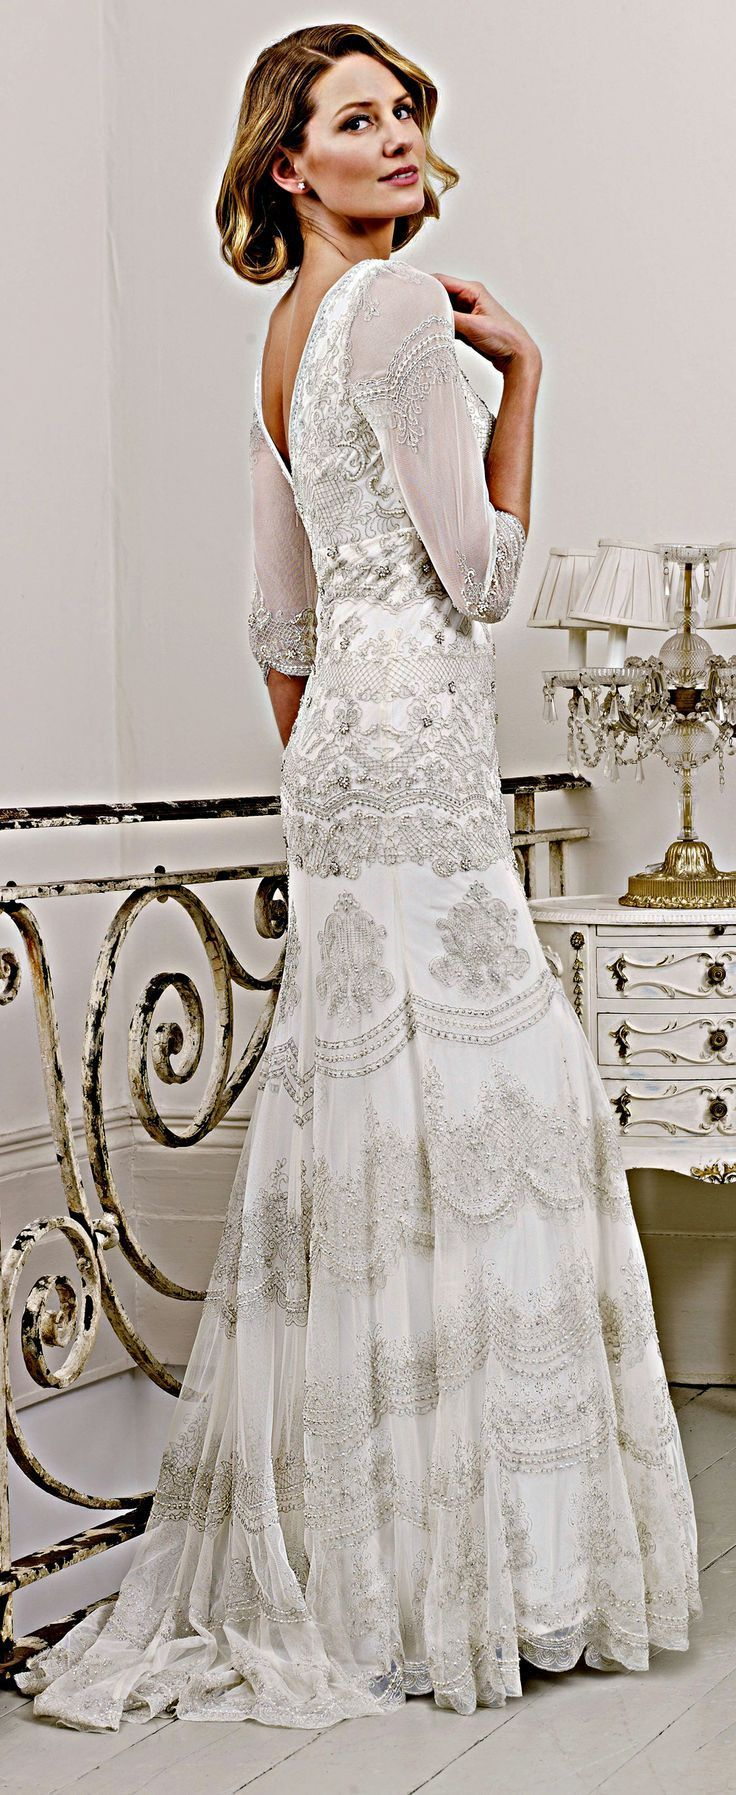 Wedding Dress For Older Bride   Dressy Dresses For Weddings Check More At  Http:/